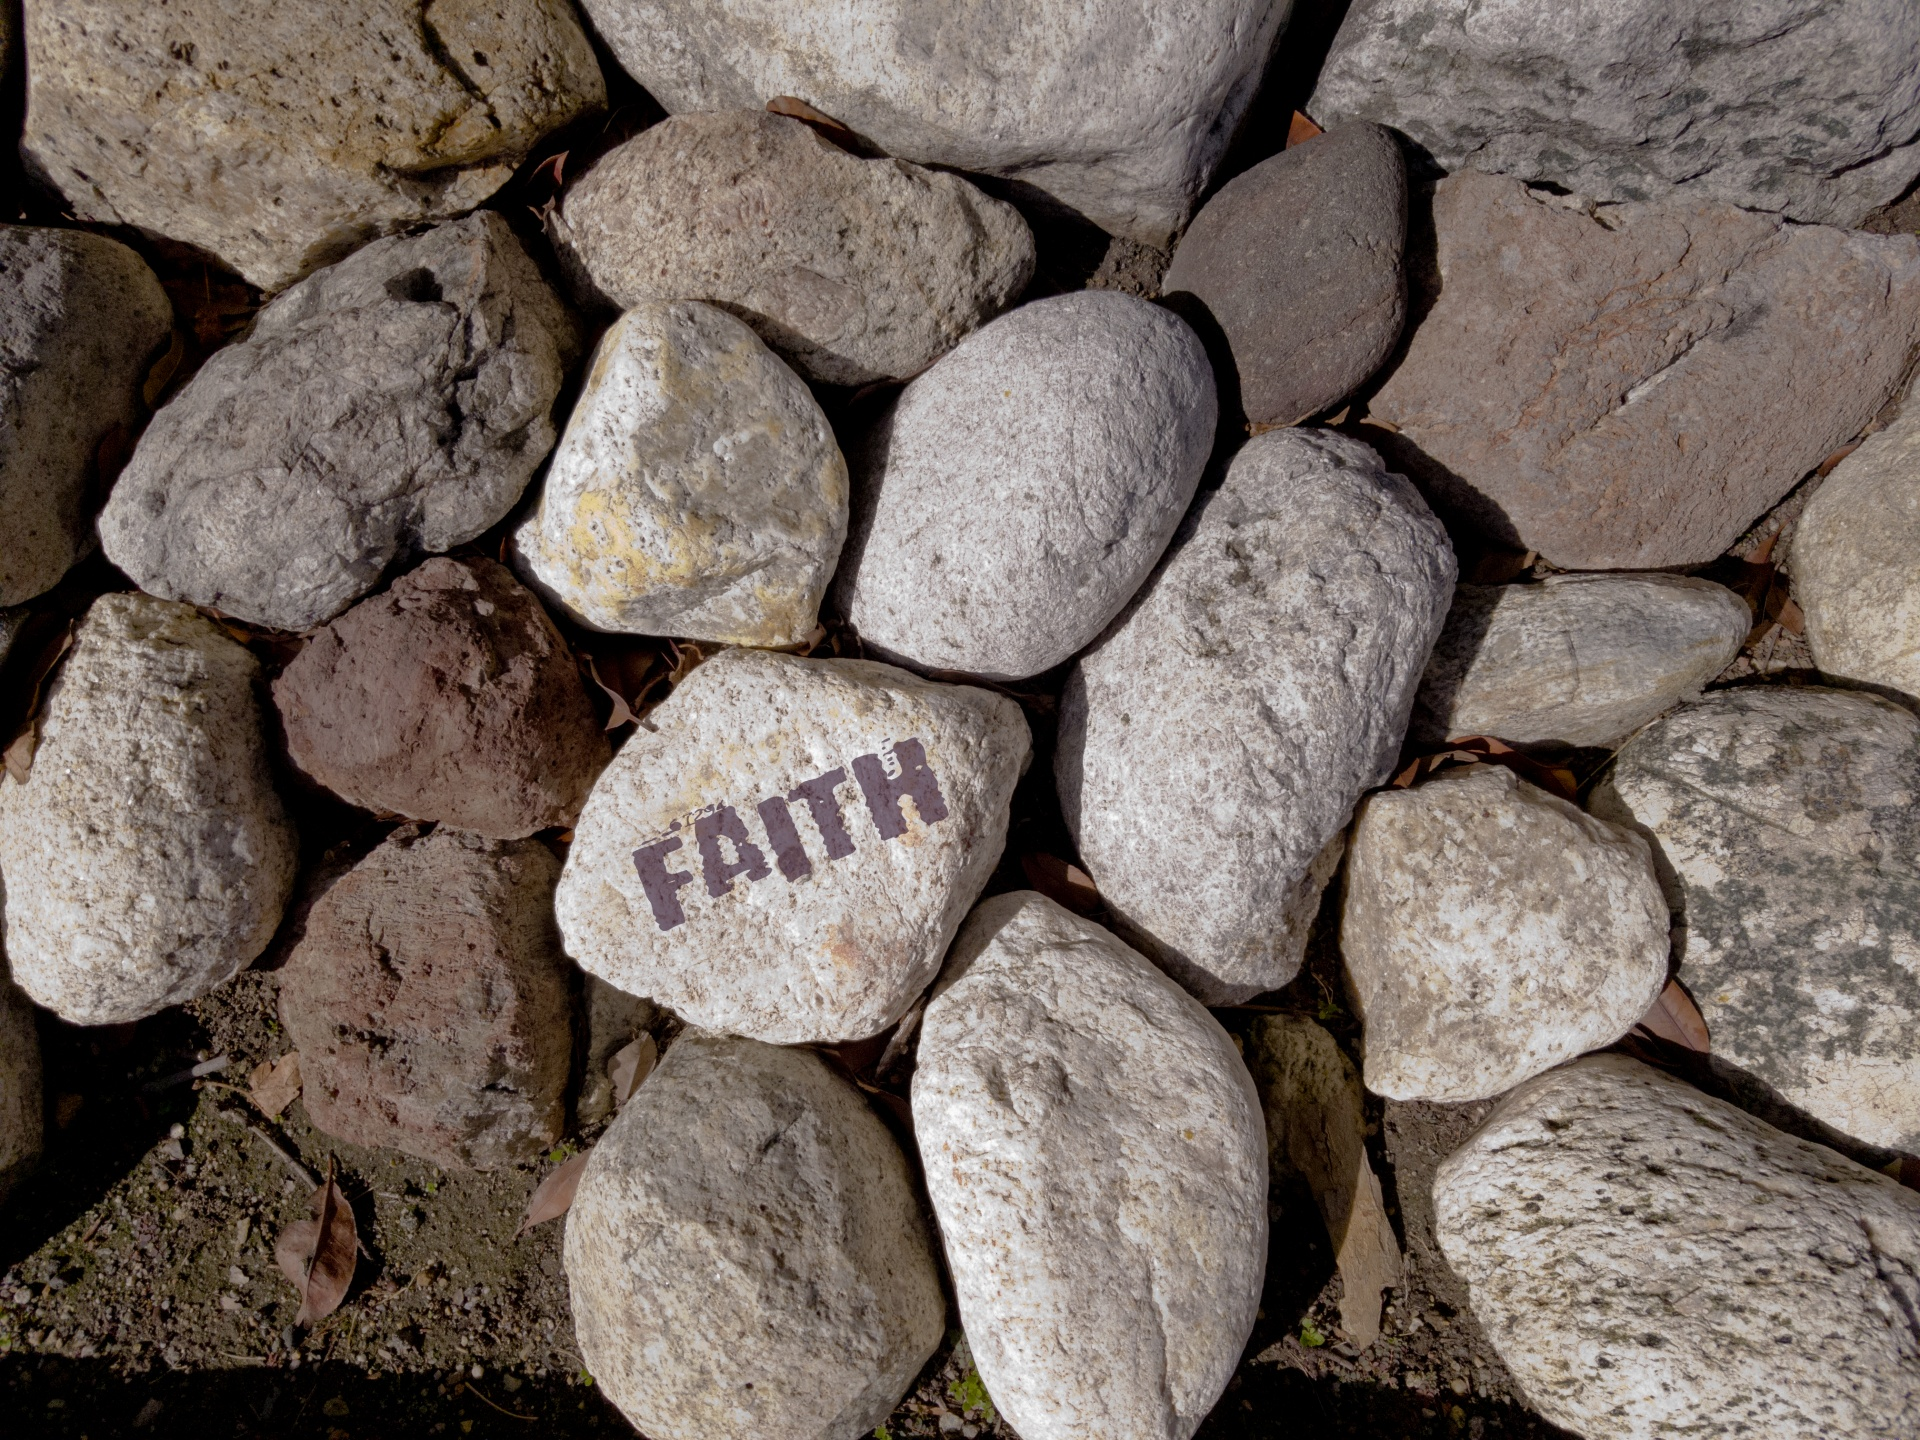 faith-written-on-rock